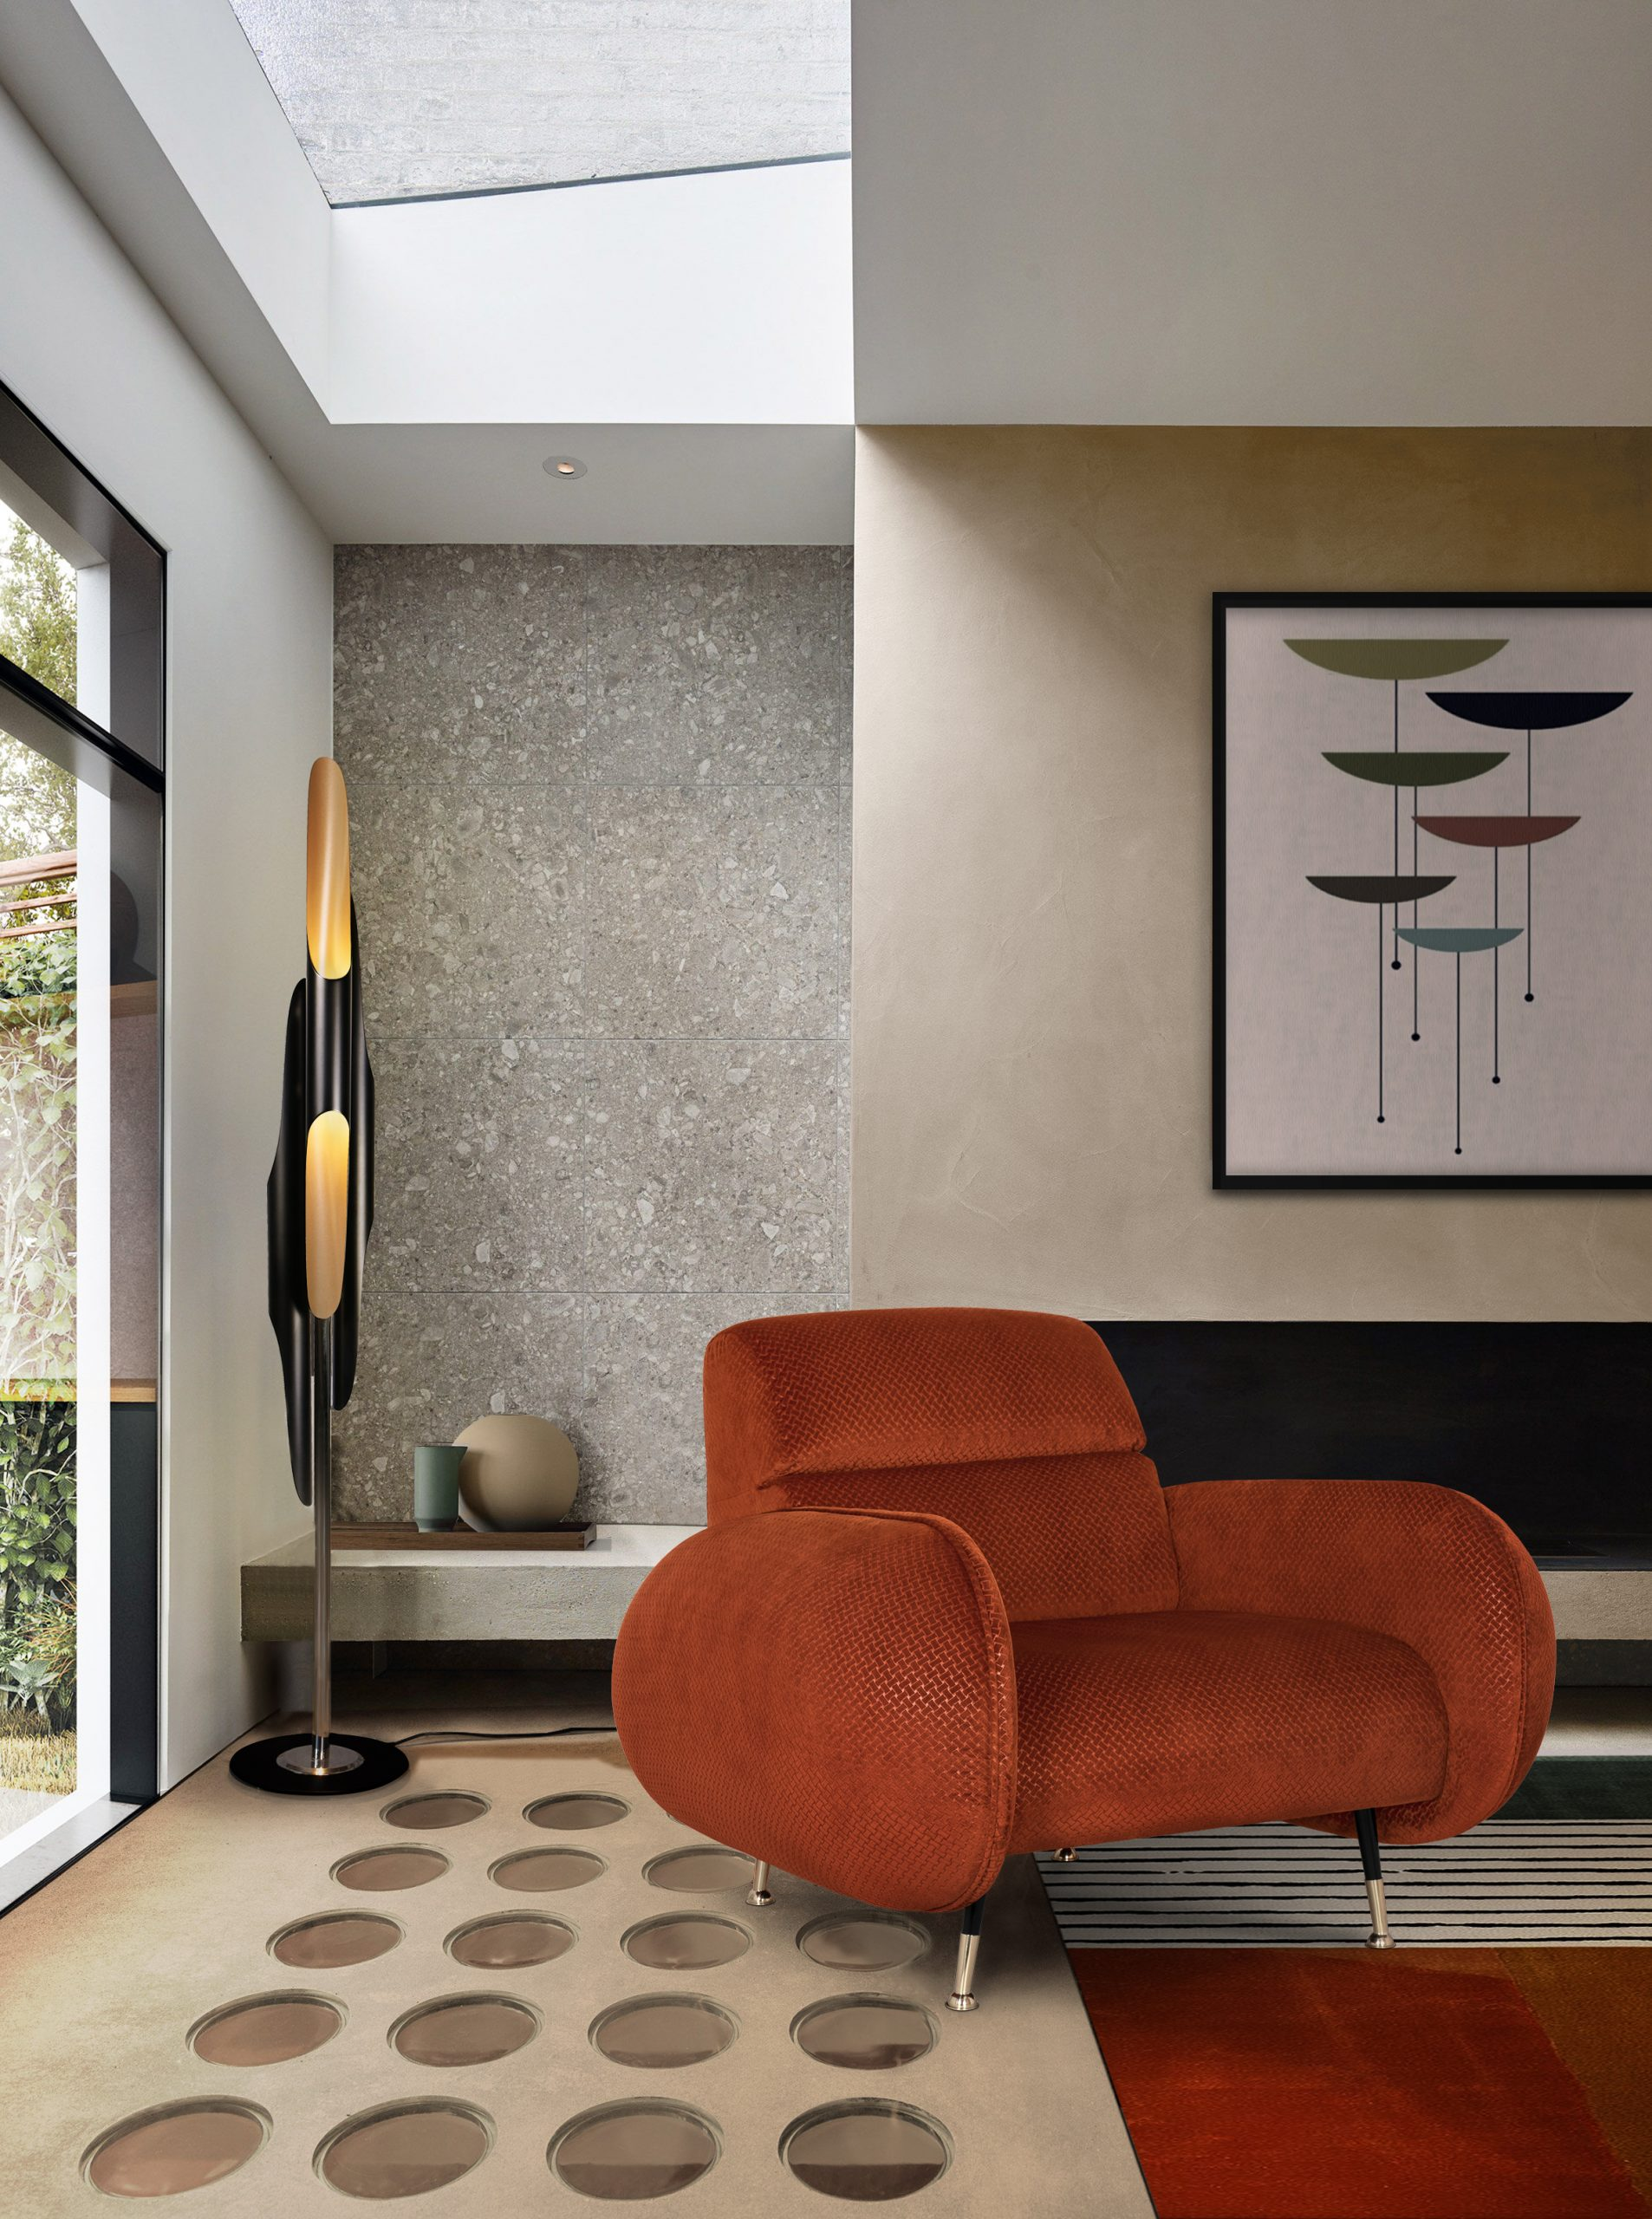 MID-CENTURY INSPIRED SPACE